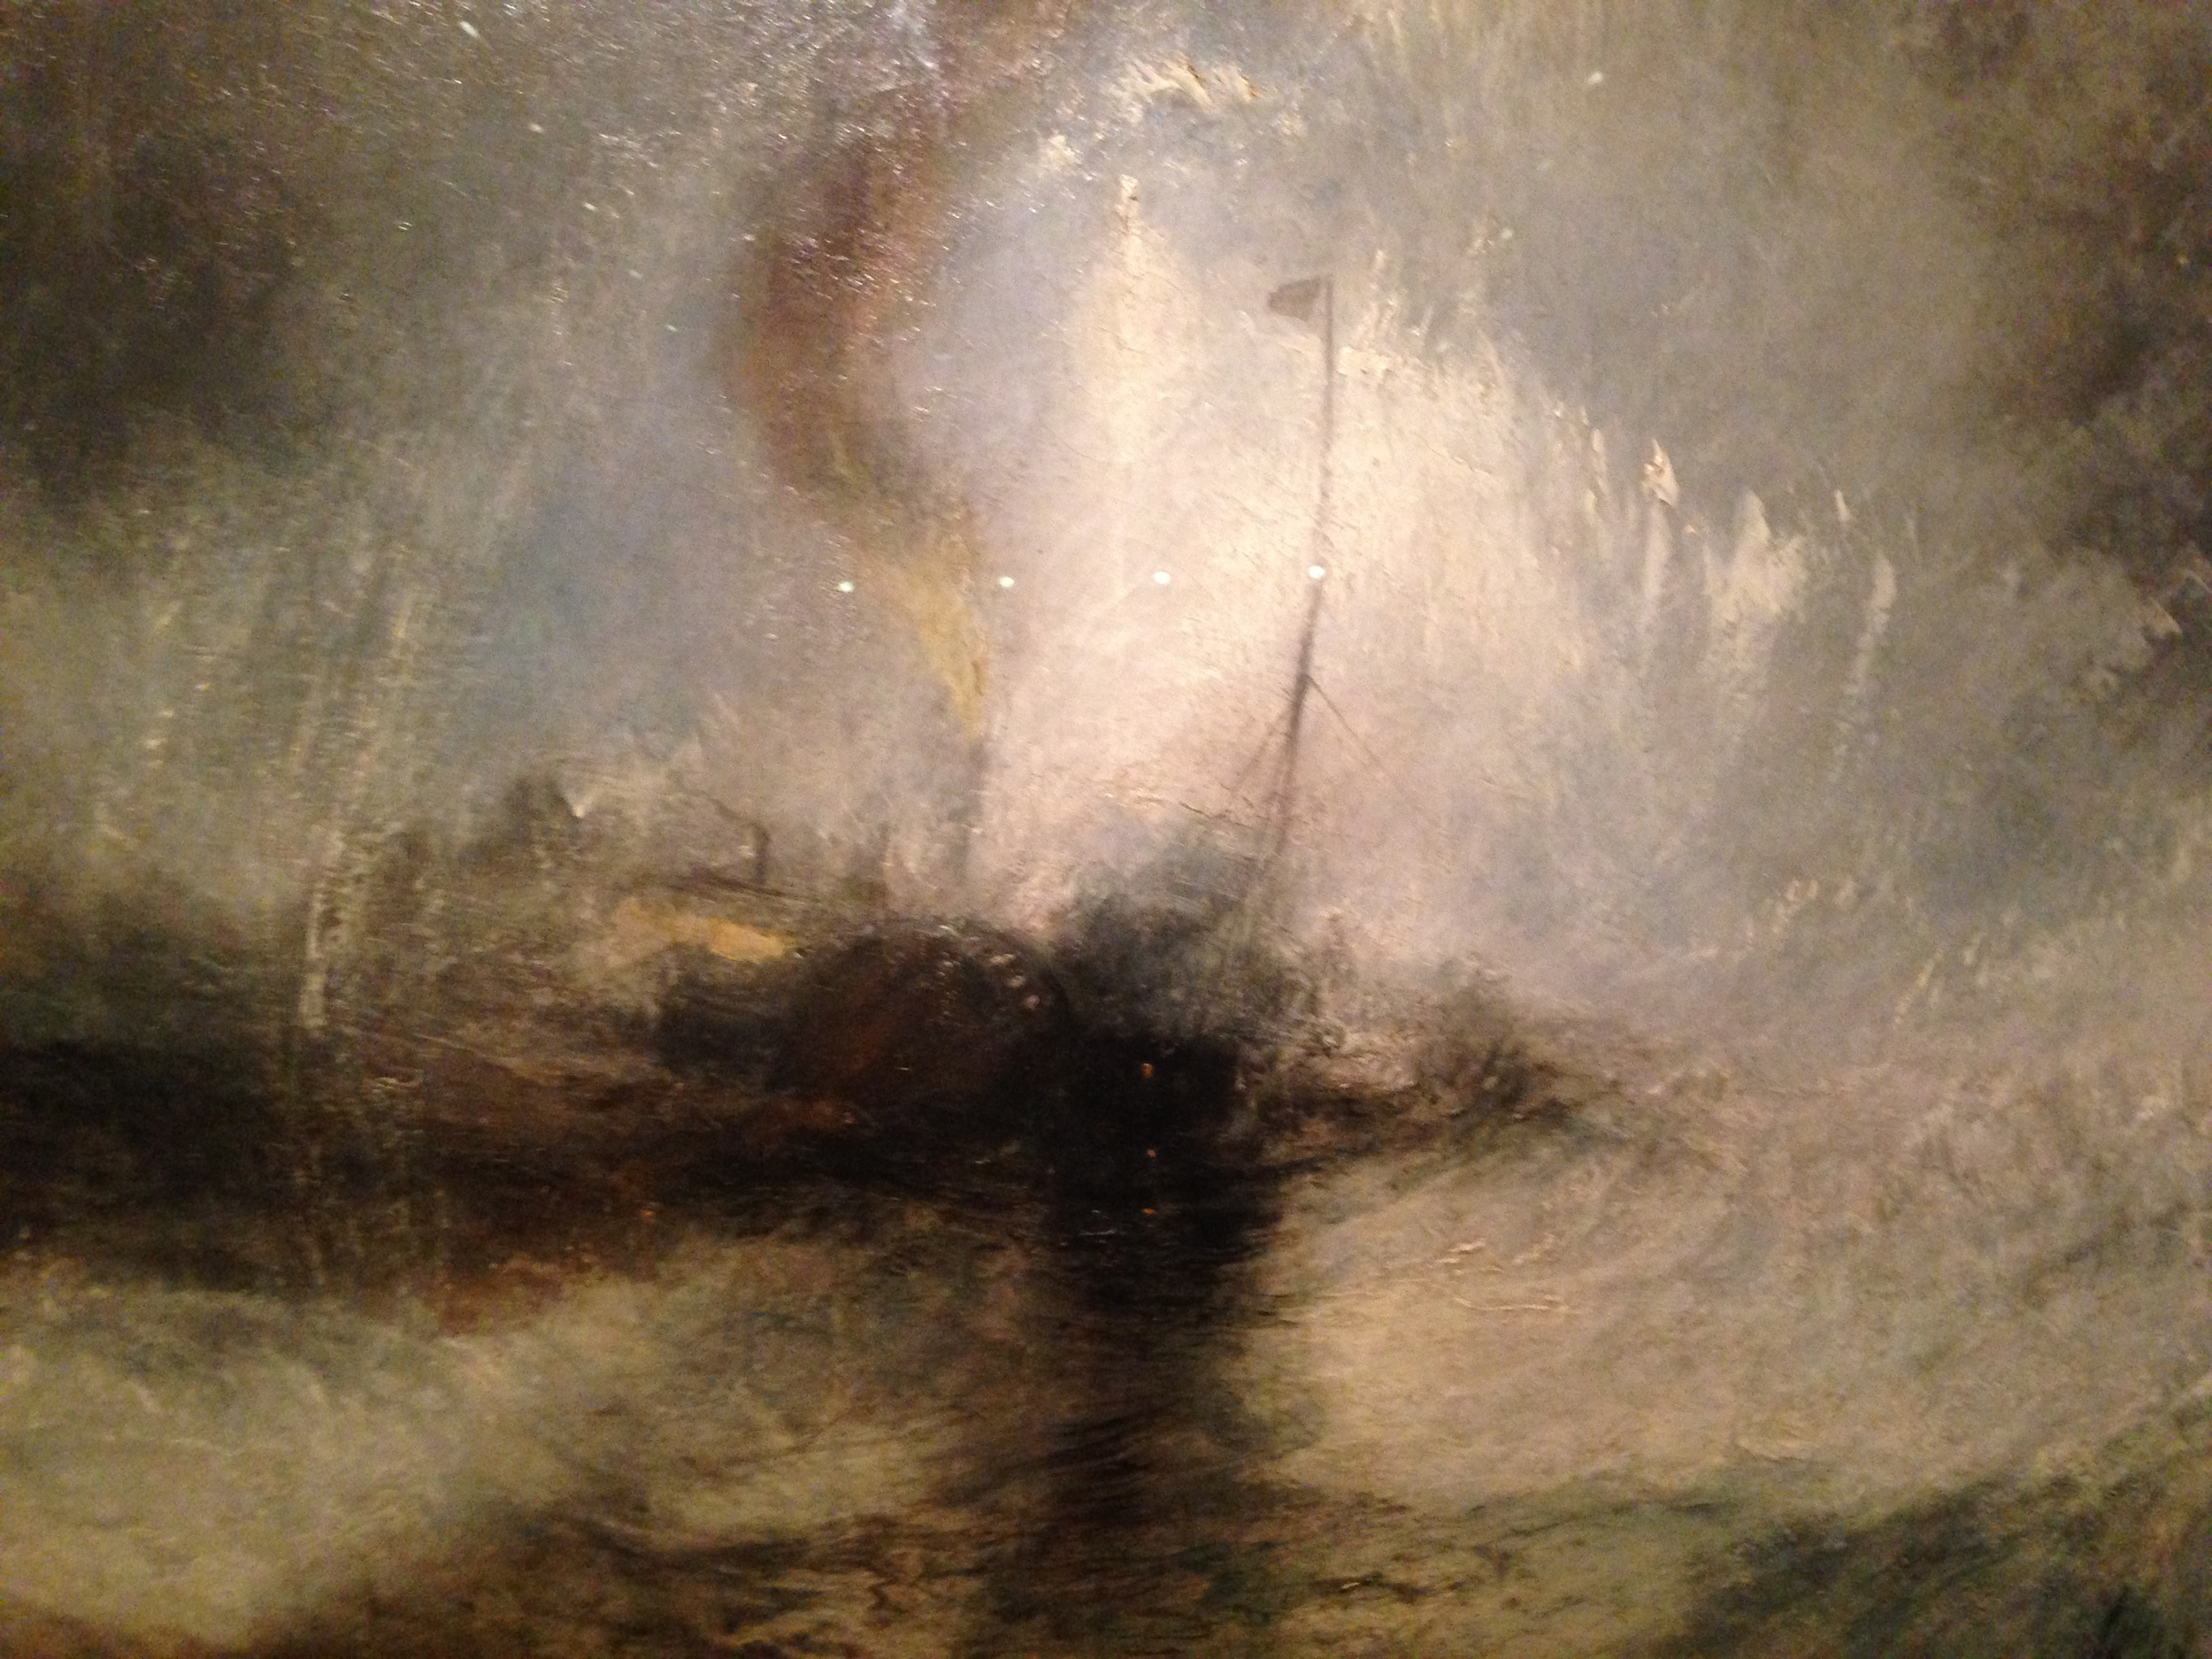 JMW Turner, (detail)  Painting Set Free Exhibit  De Young Museum, San Francisco